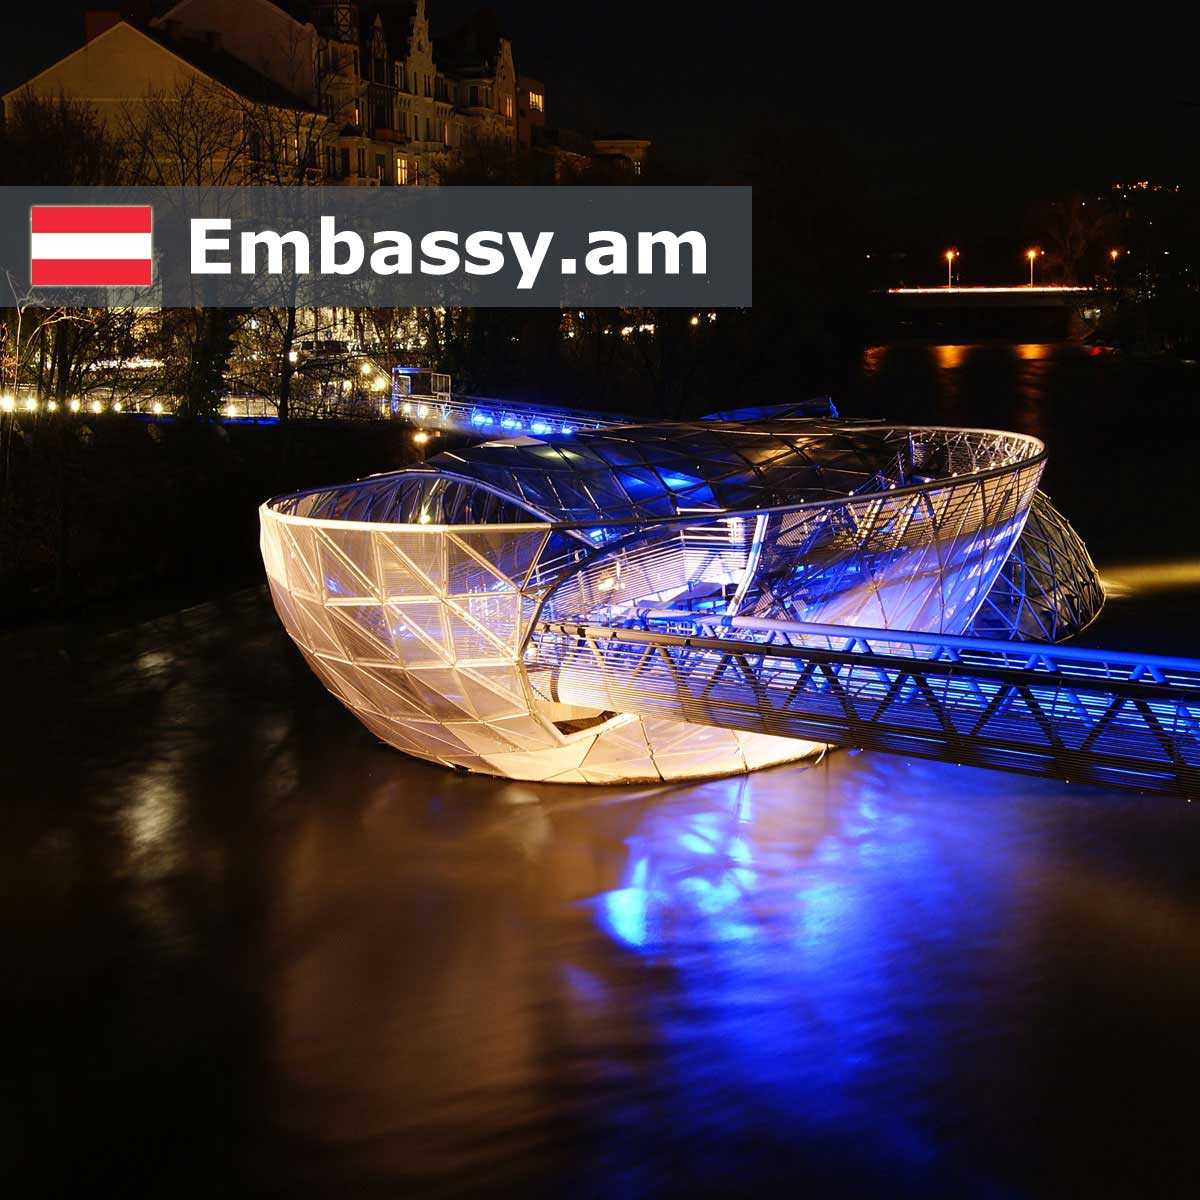 Graz - Hotels in Austria - Embassy.am